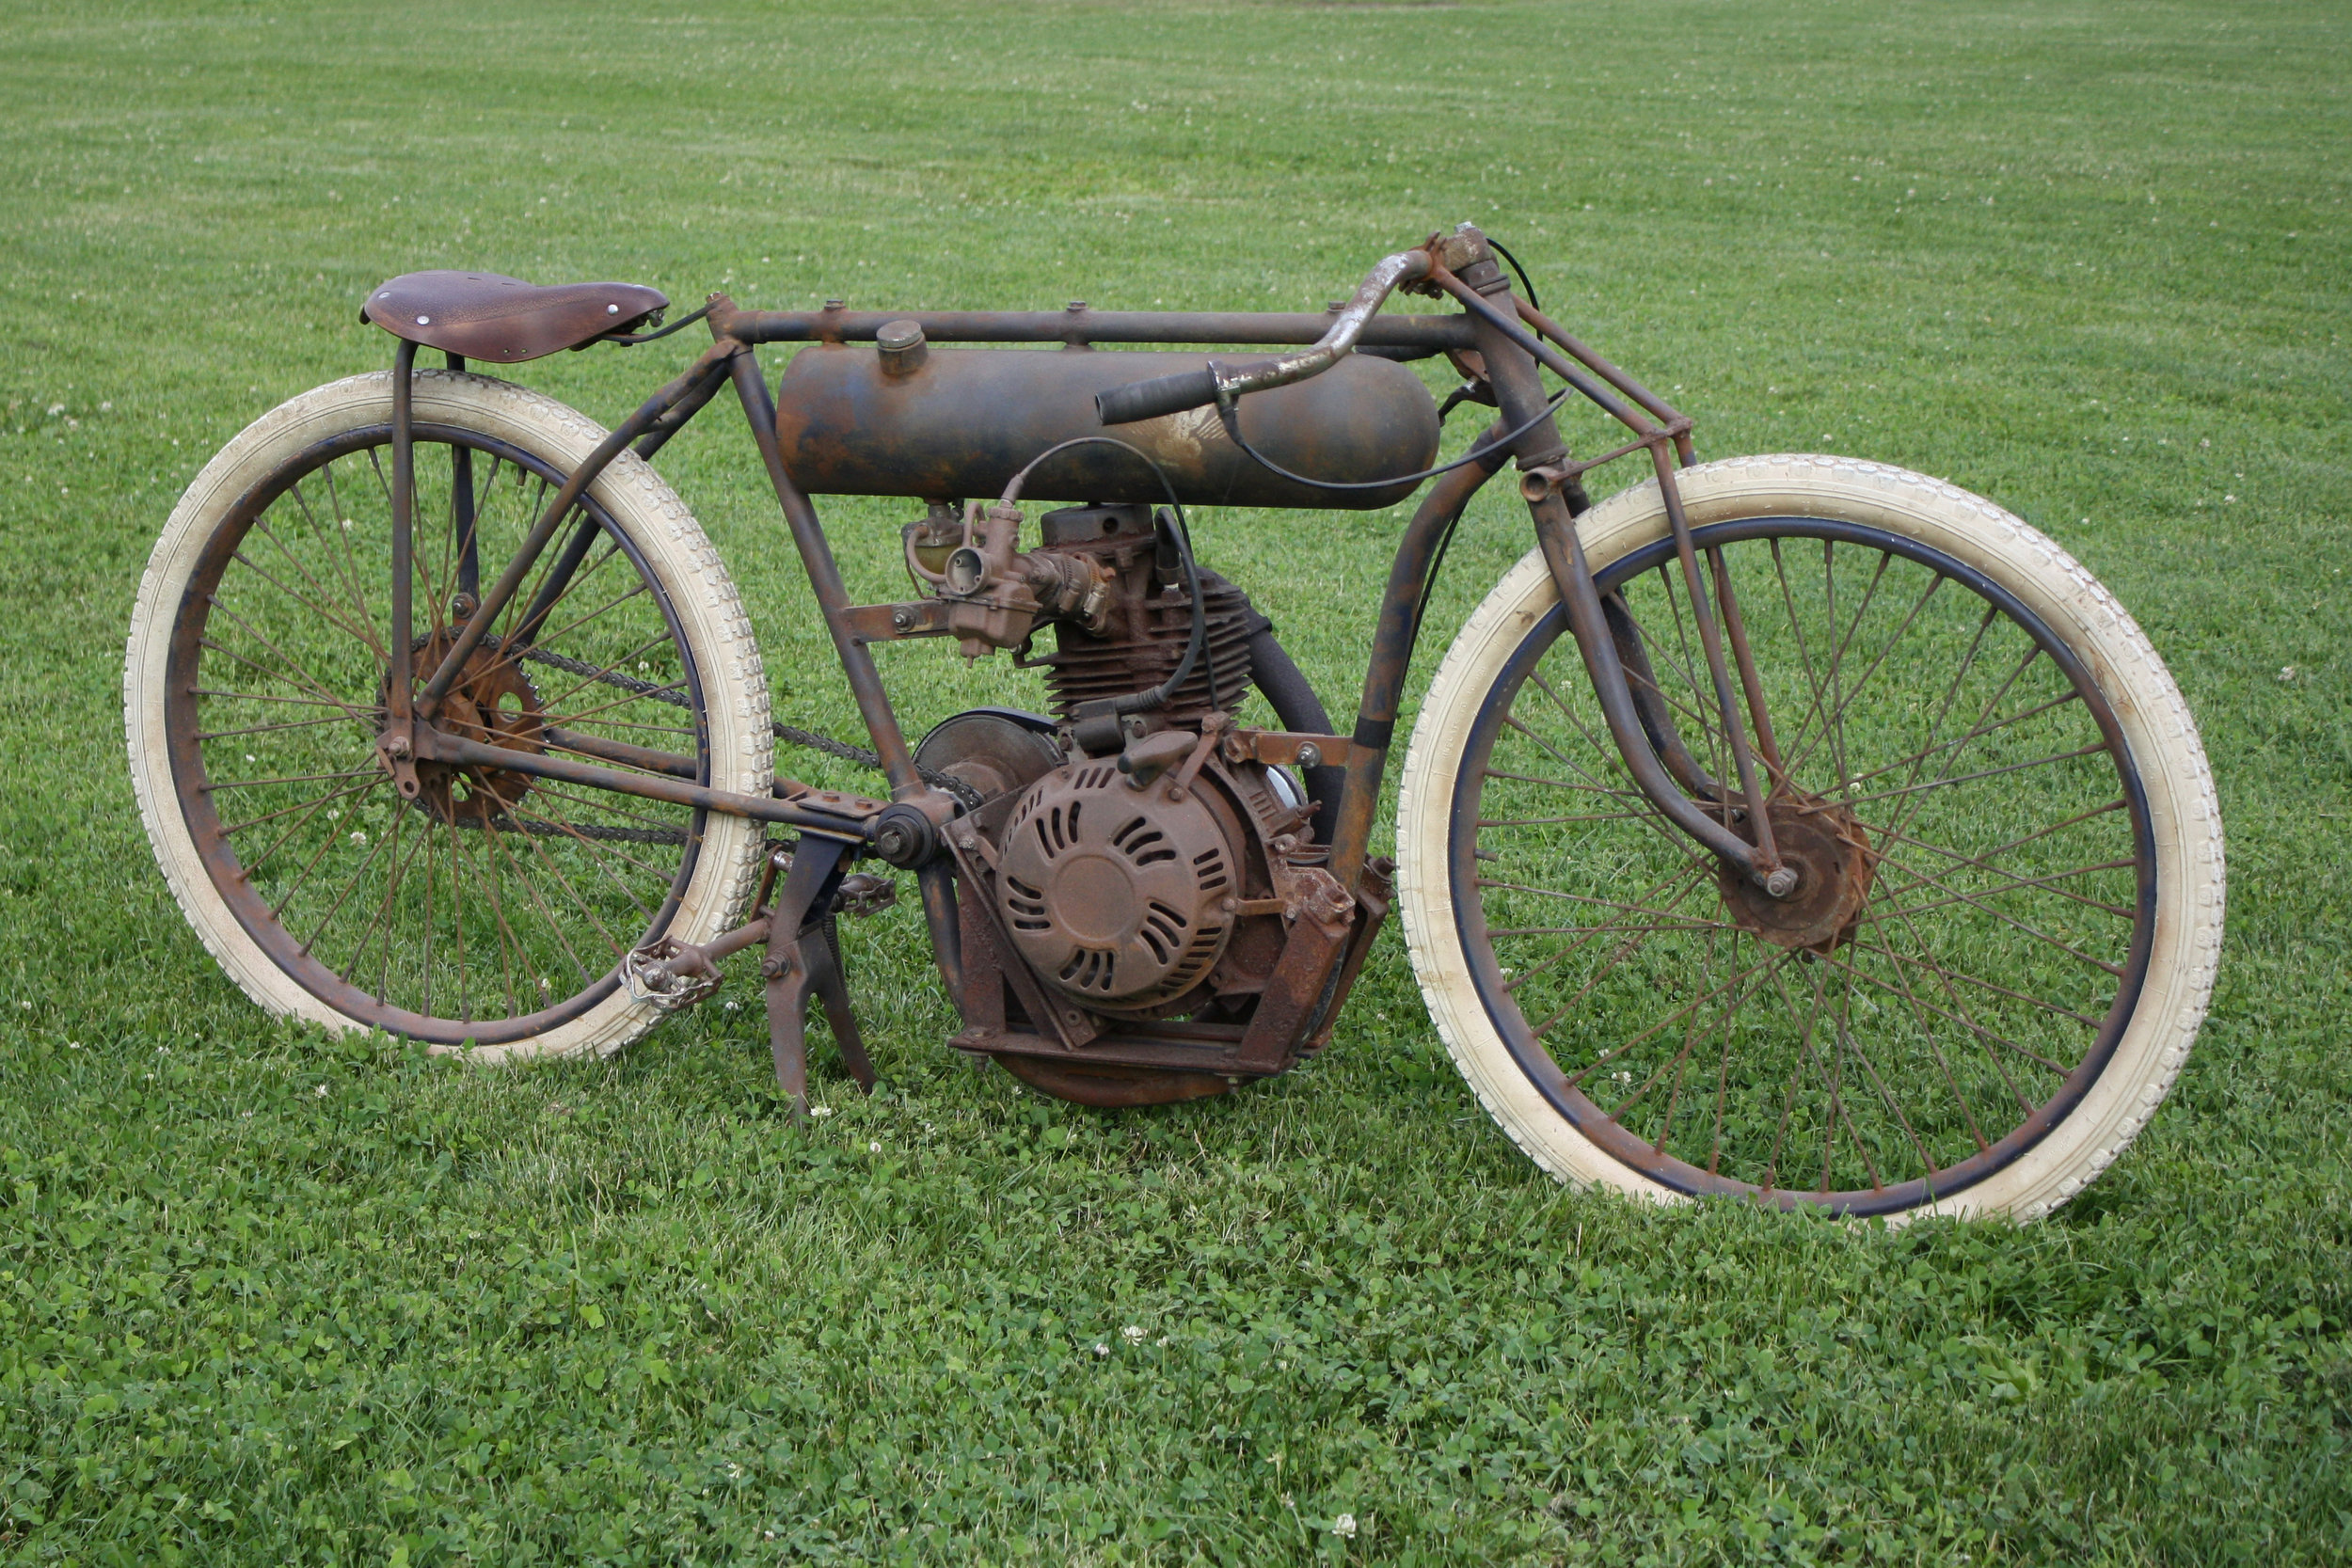 350cc Racer - 1909 board track racer tribute. Powered by a Honda gx340 clone with a Comet 30 series CVT